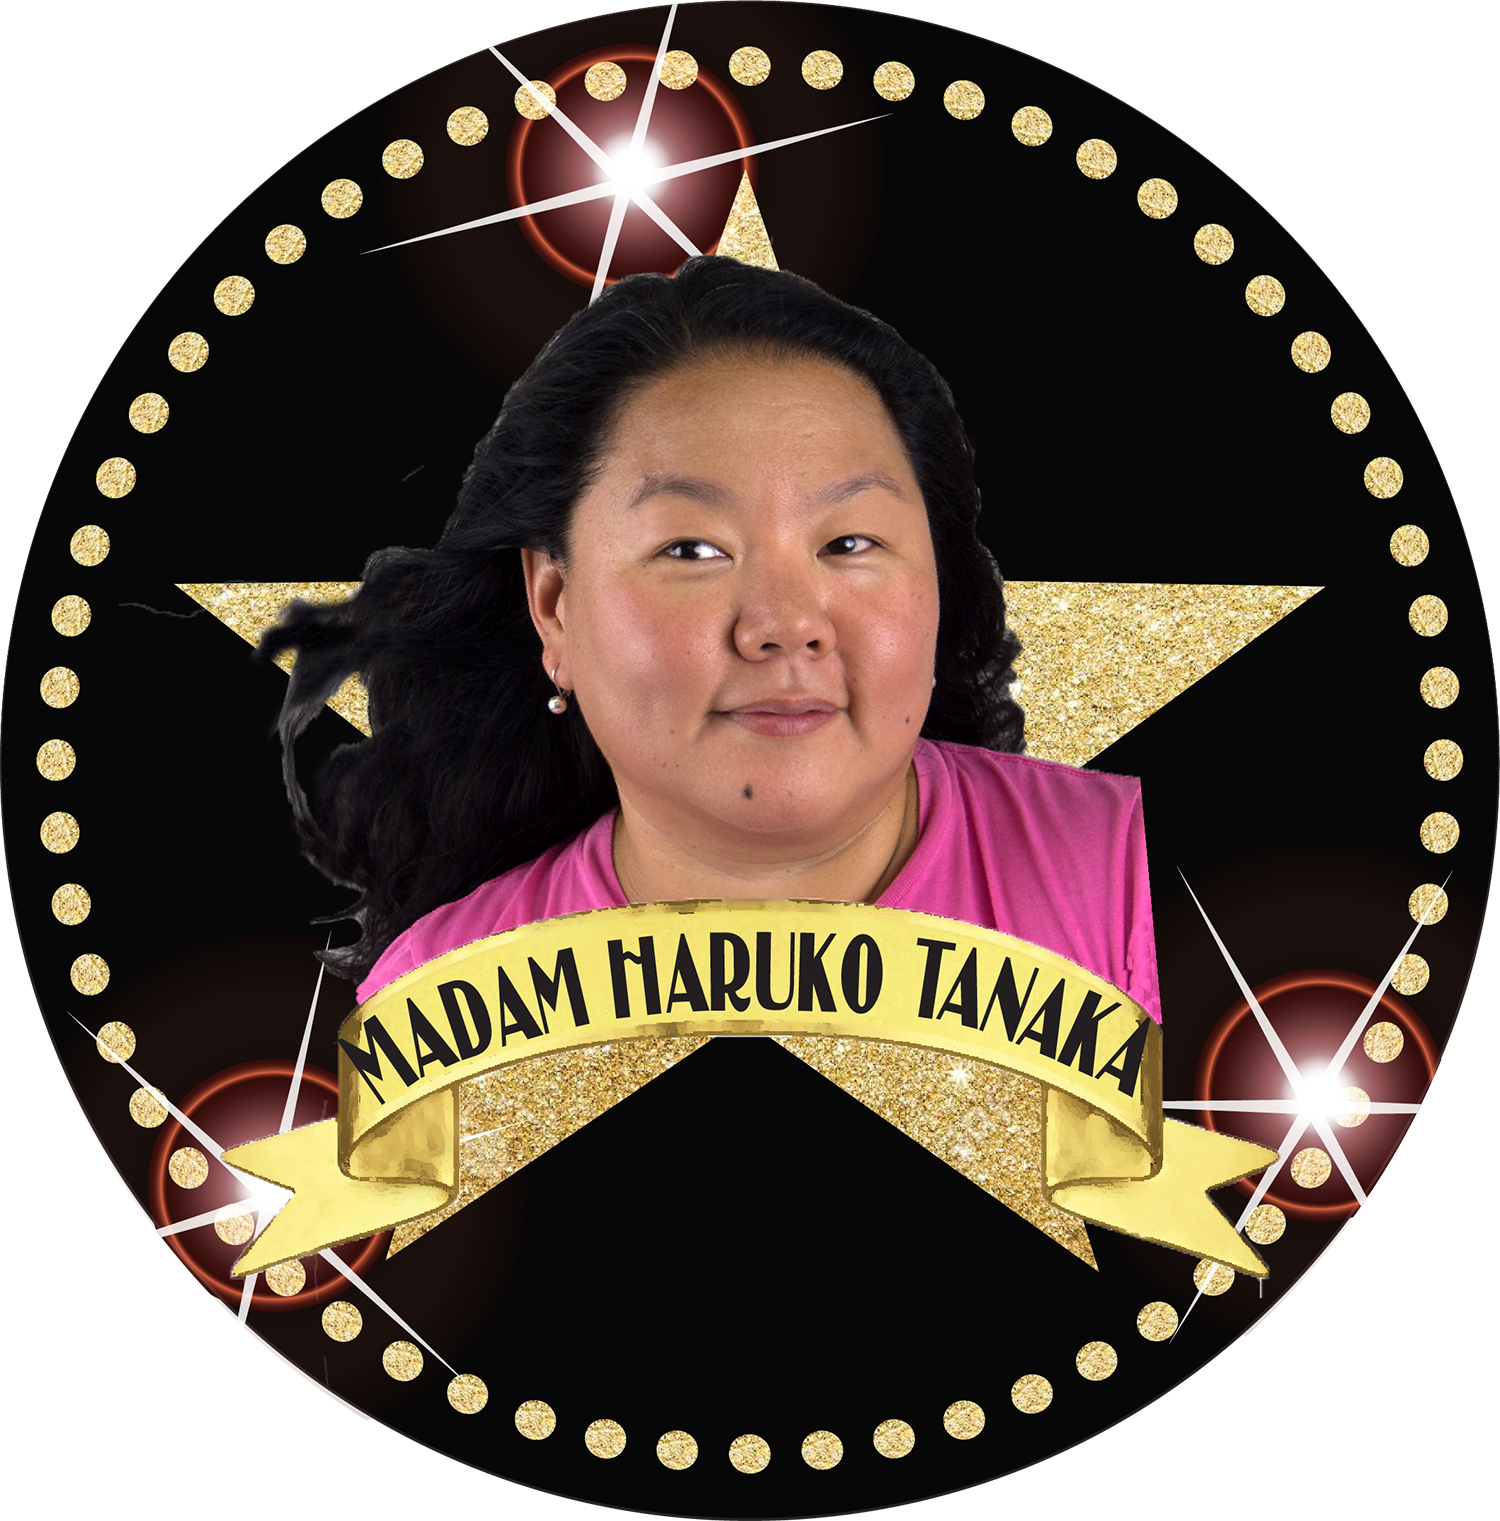 """Haruko has been a proud member of Gawdafful National Theater since its beginning. She started in the gawdafful mailroom and quickly made her way through the ranks doing everything from gawdafful P.R. P.R., gawdafful graphic design, gawdafful videography, gawdafful photography, gawdafful craft services,gawdafful seamstressing, gawdafful background singing, gawdafful stage managing, and gawdafful assistant directing. Today, she holds the title of """"Gawdafful Psychic Aide to the Gawdafful Director"""" and is the designer and creator of this gawdafful website.   www.kissoftheworld.net   www.krystalkrunch.com"""